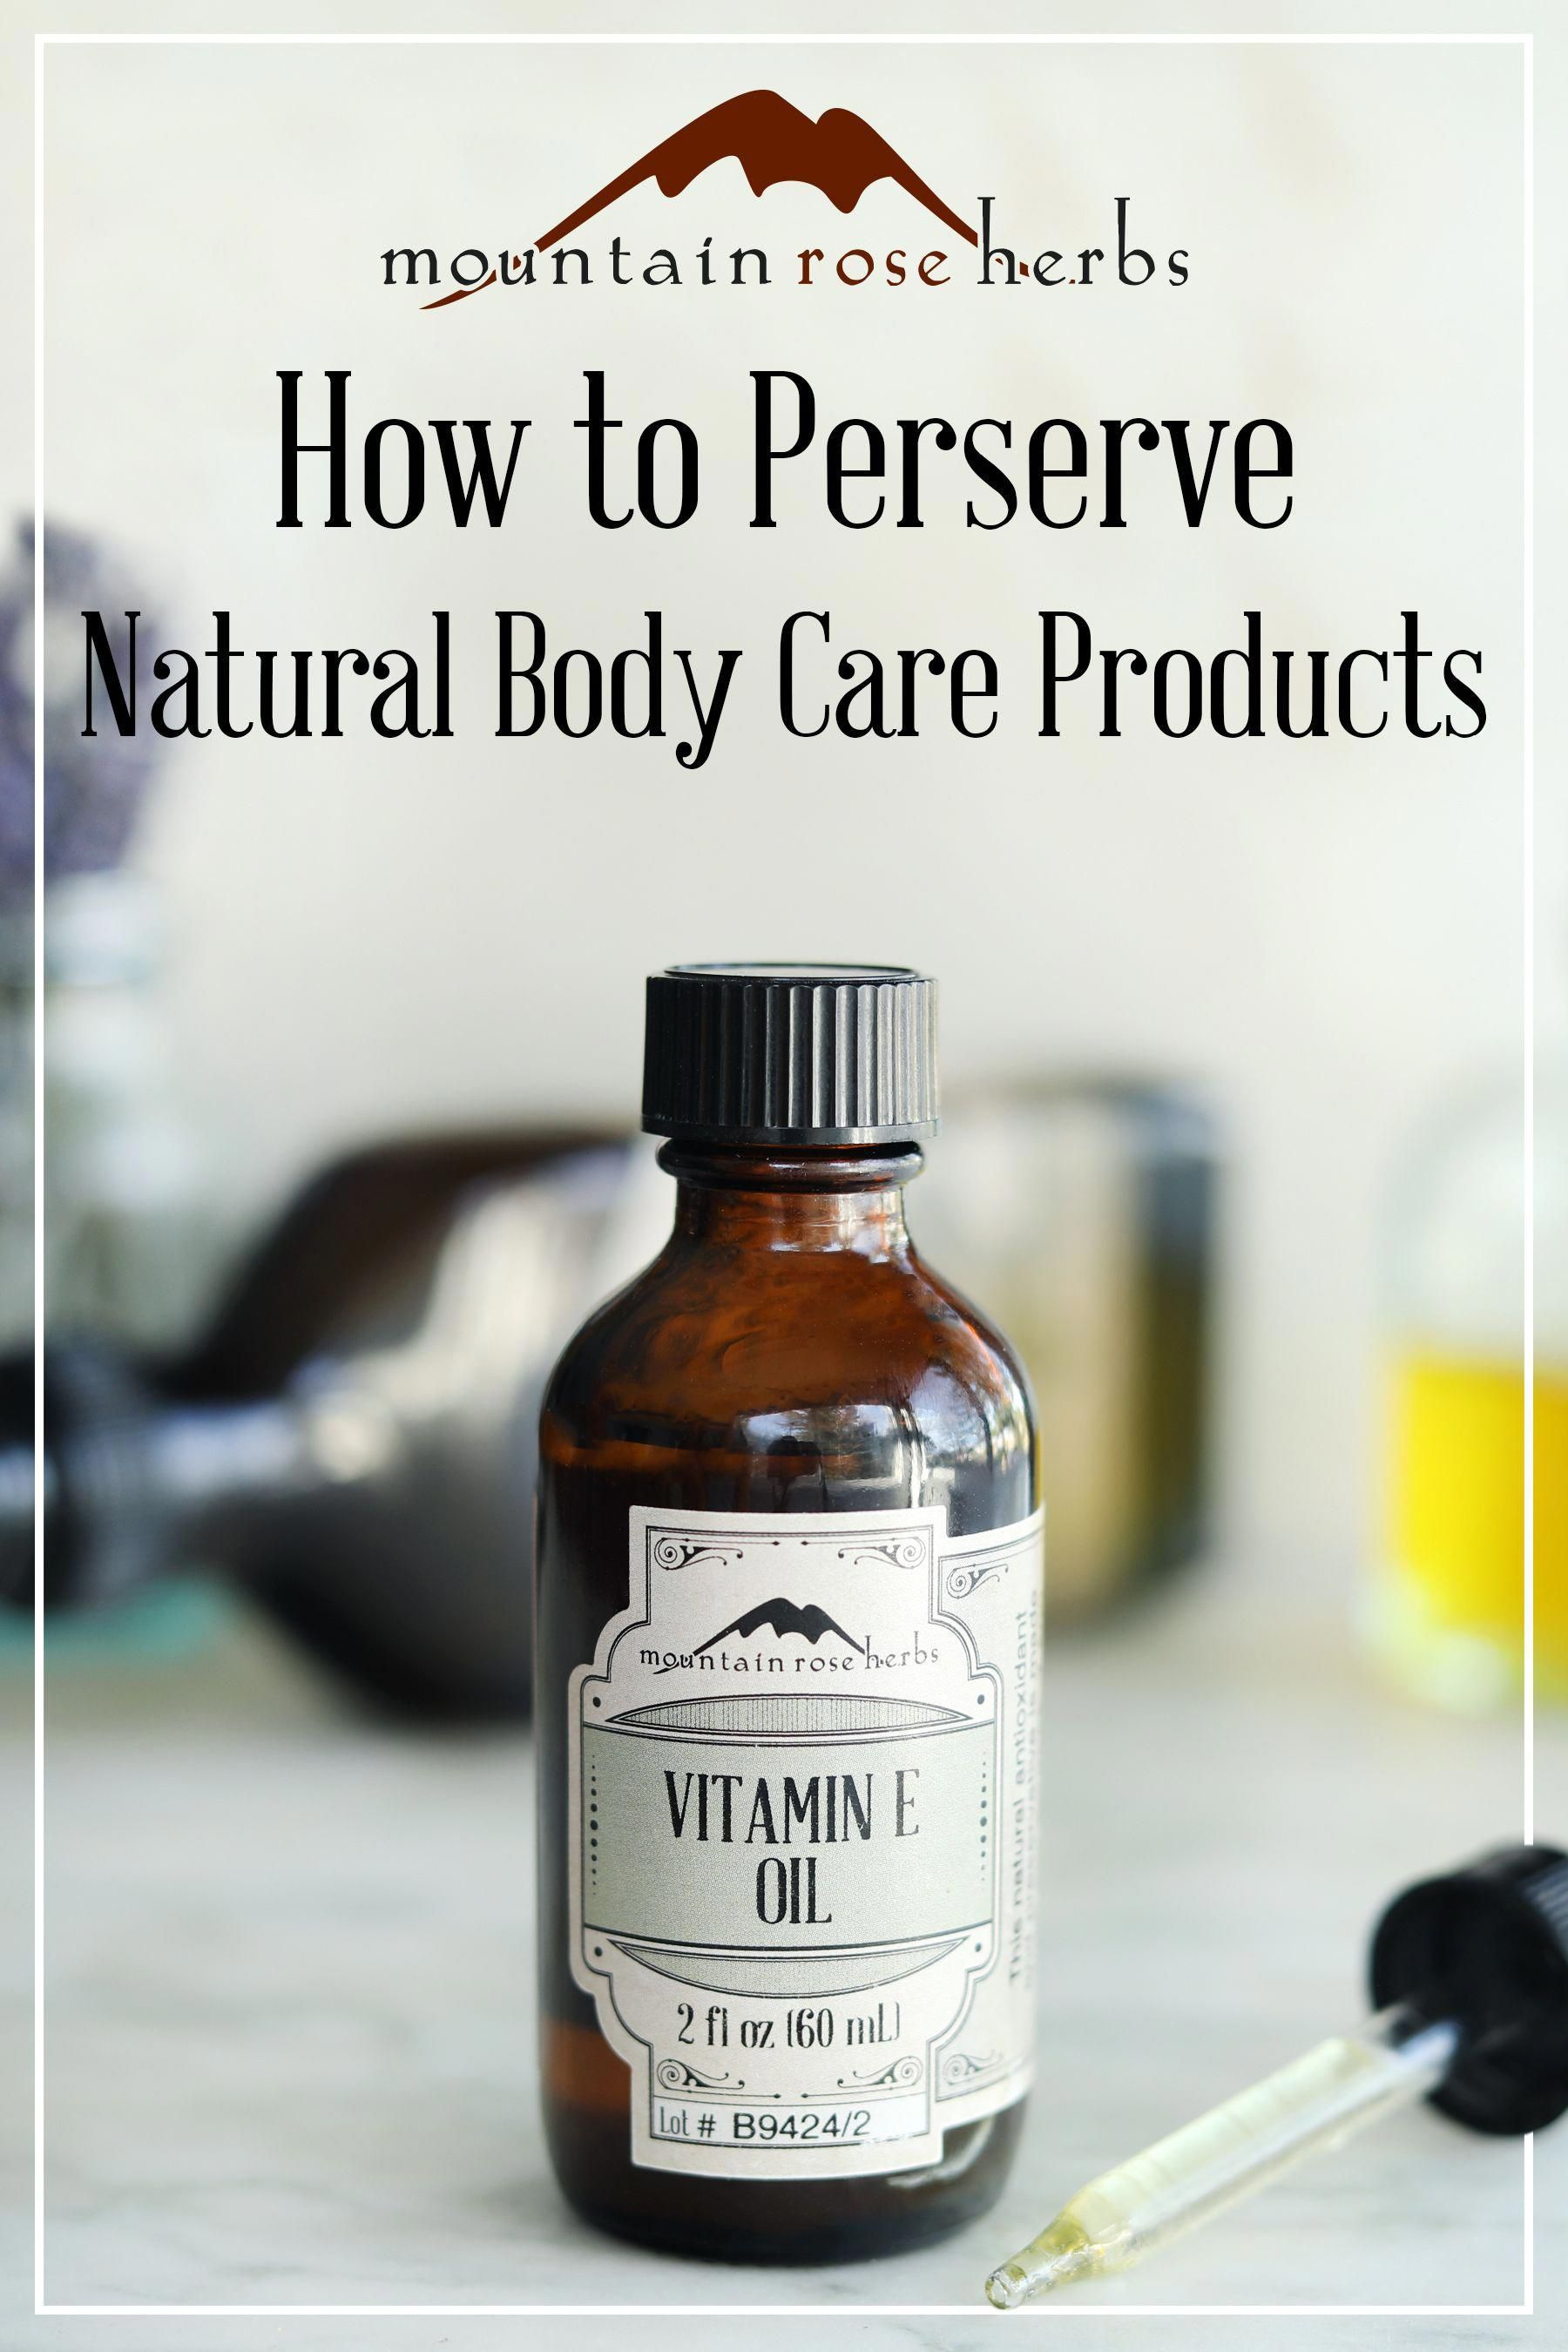 How To Preserve Natural Body Care Products Love To Make Your Own Skin Care Recipes But Worried About Them Spoil In 2020 Natural Body Care Body Care Skin Care Recipes